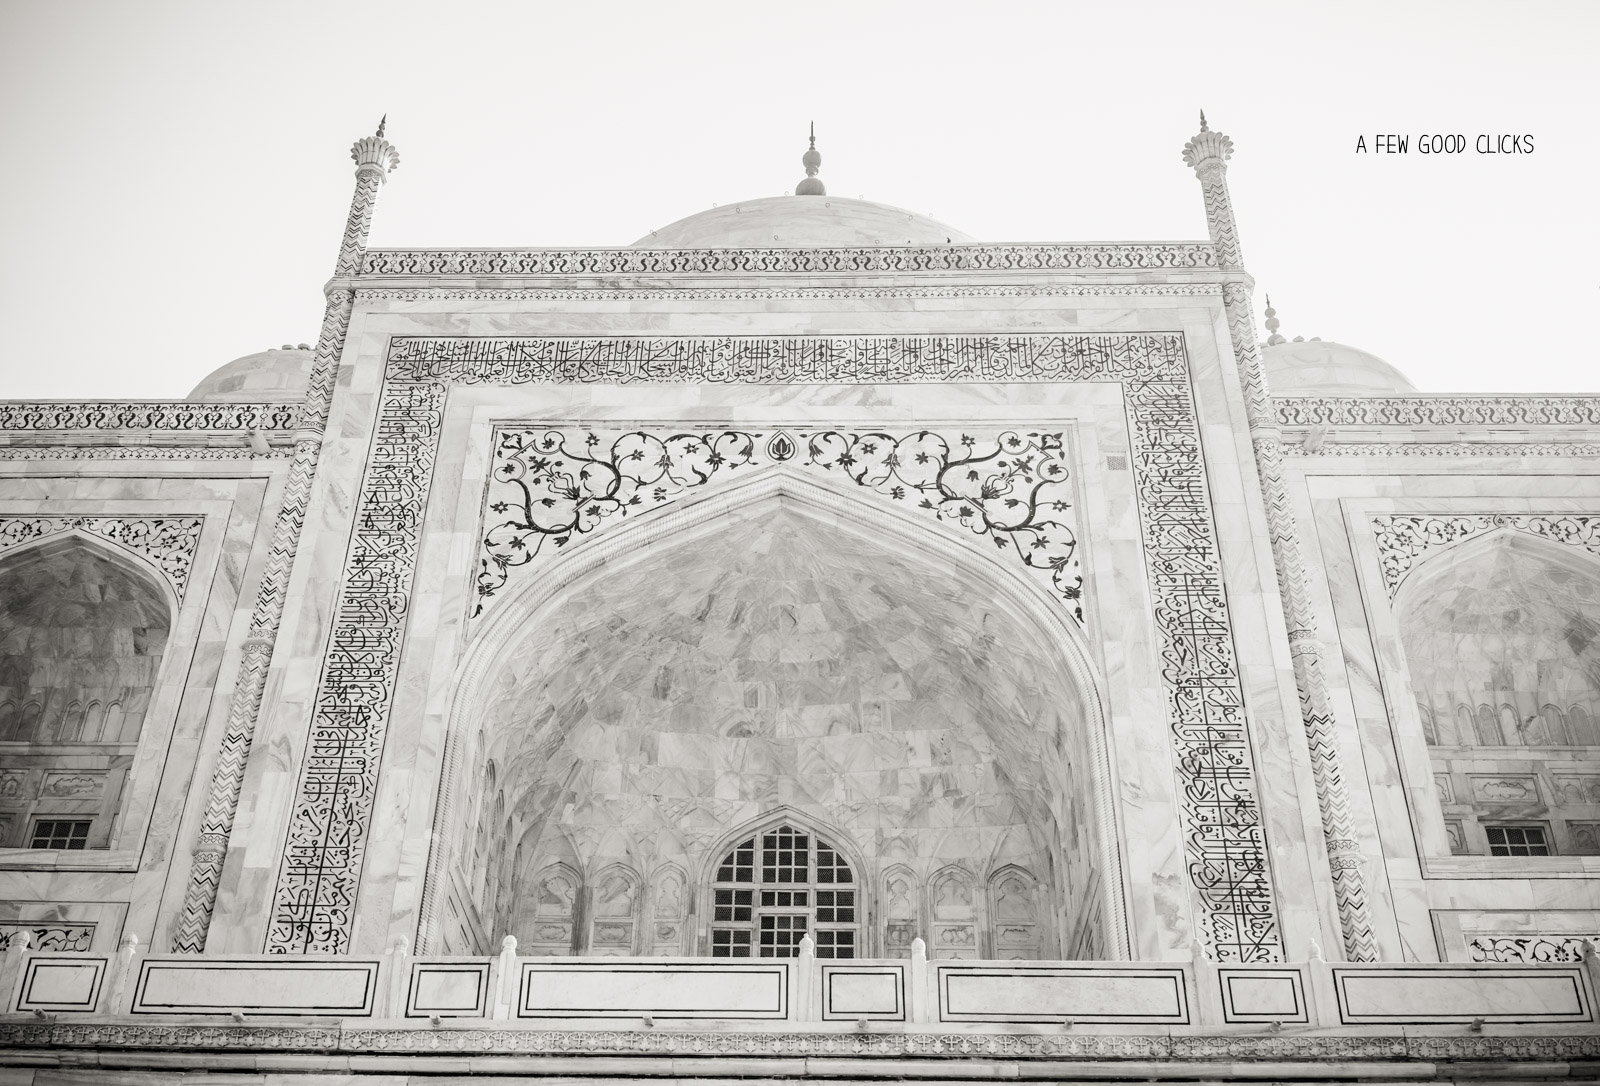 Exteriors of Taj Mahal in Monochrome |  Travel Photographs  by A Few Good Clicks